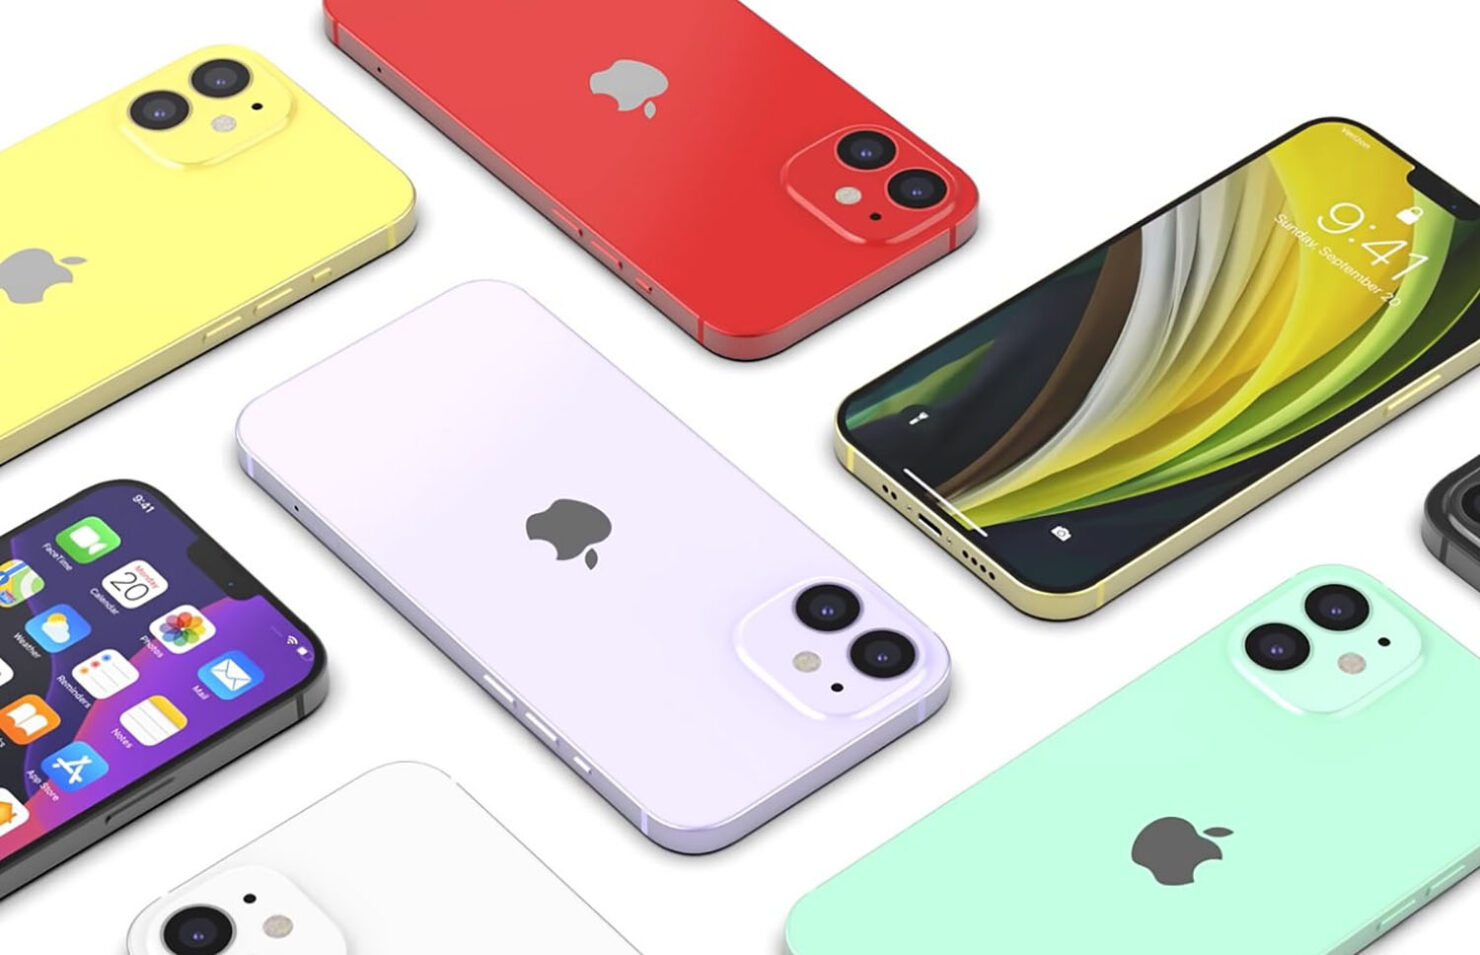 5.4-inch iPhone 12 mini Will Have Worse Battery Life Than iPhone 11, Due to 'Its Form Factor'